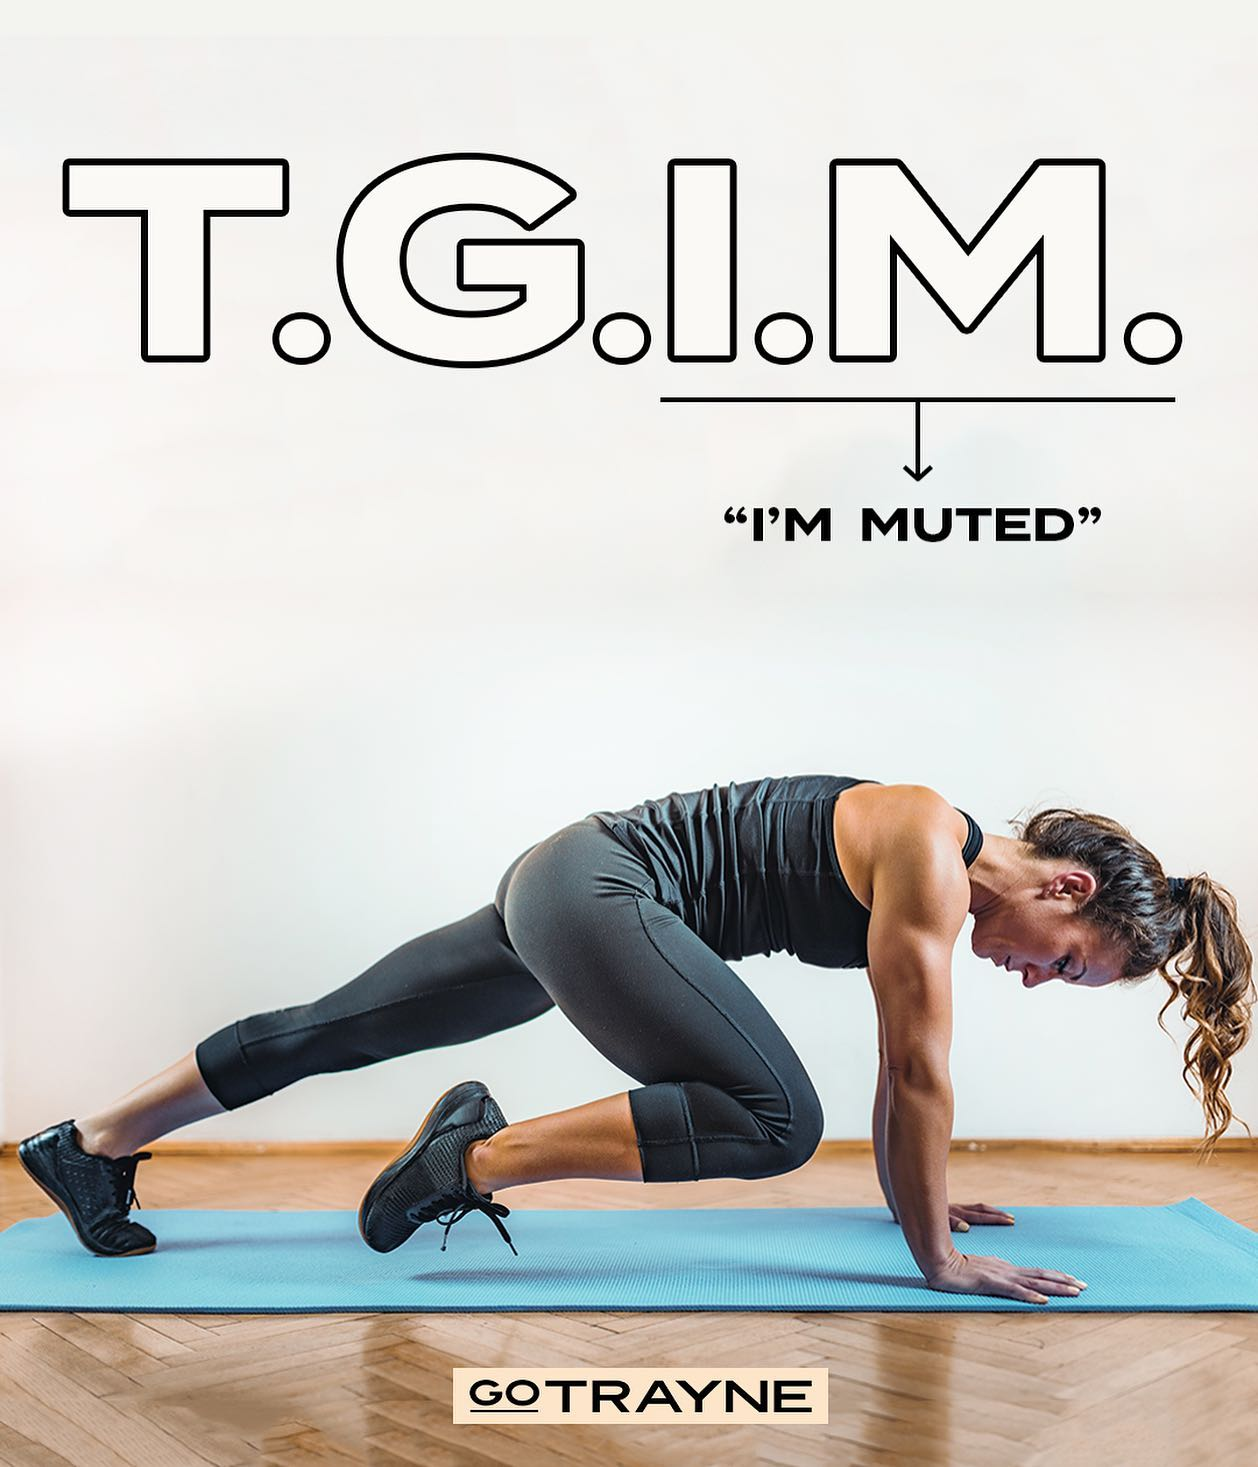 TG I'm muted! ⚡️  Letting them see you sweat 👏 vs. Letting them hear you grunt 😅.   Safe to say we've all had moments in our #ZoomWorkout that make us grateful for mute!